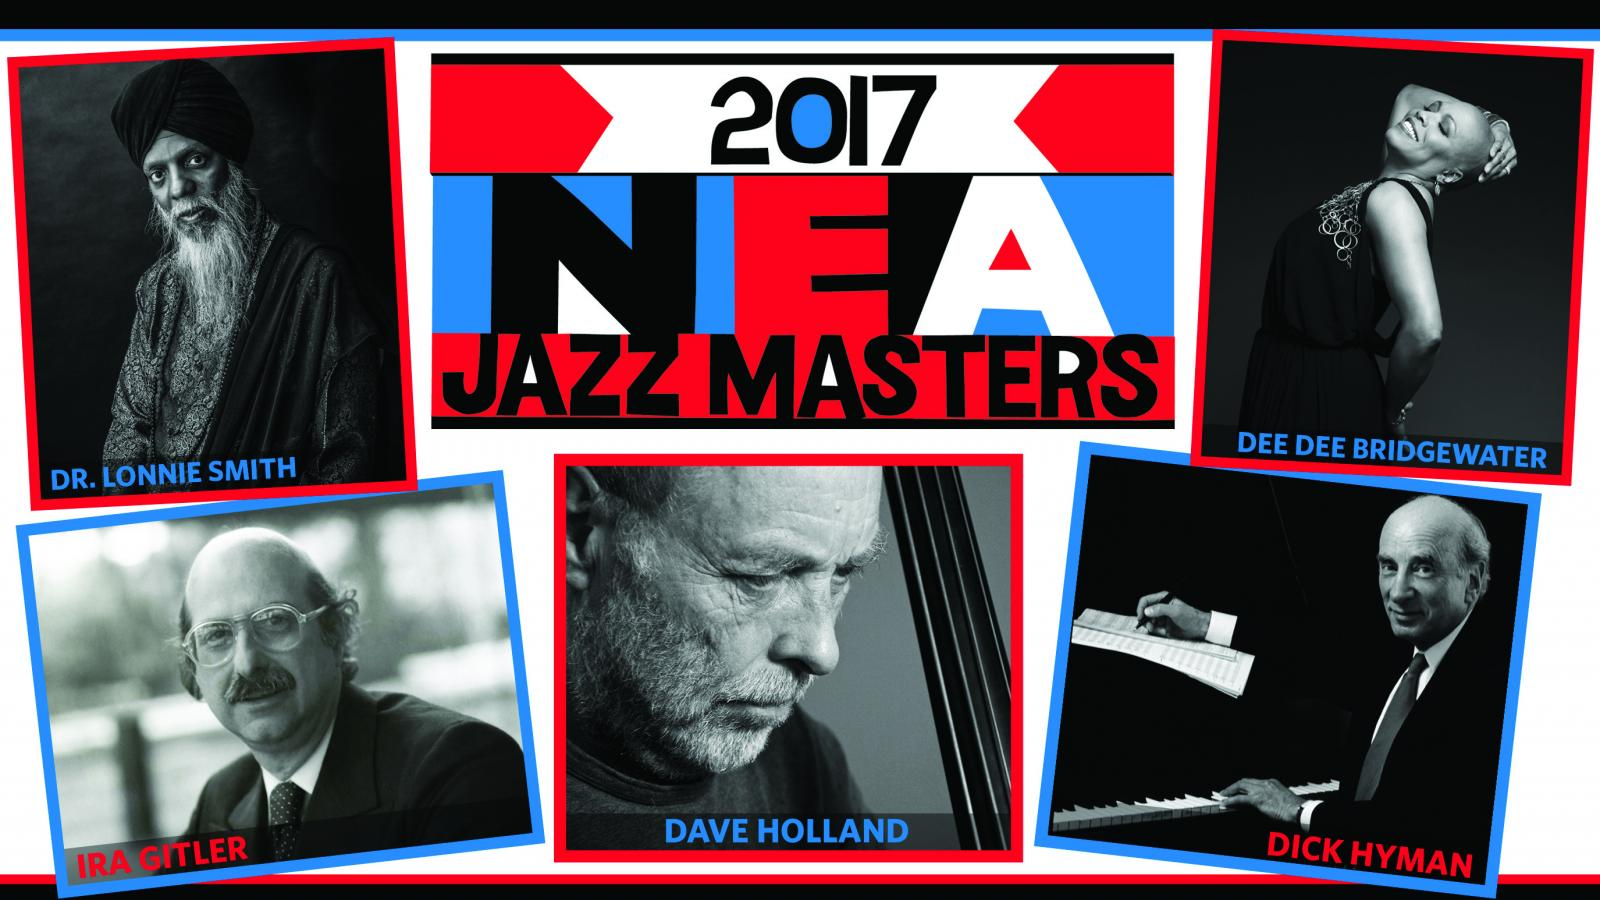 Photos of 2017 NEA Jazz Masters